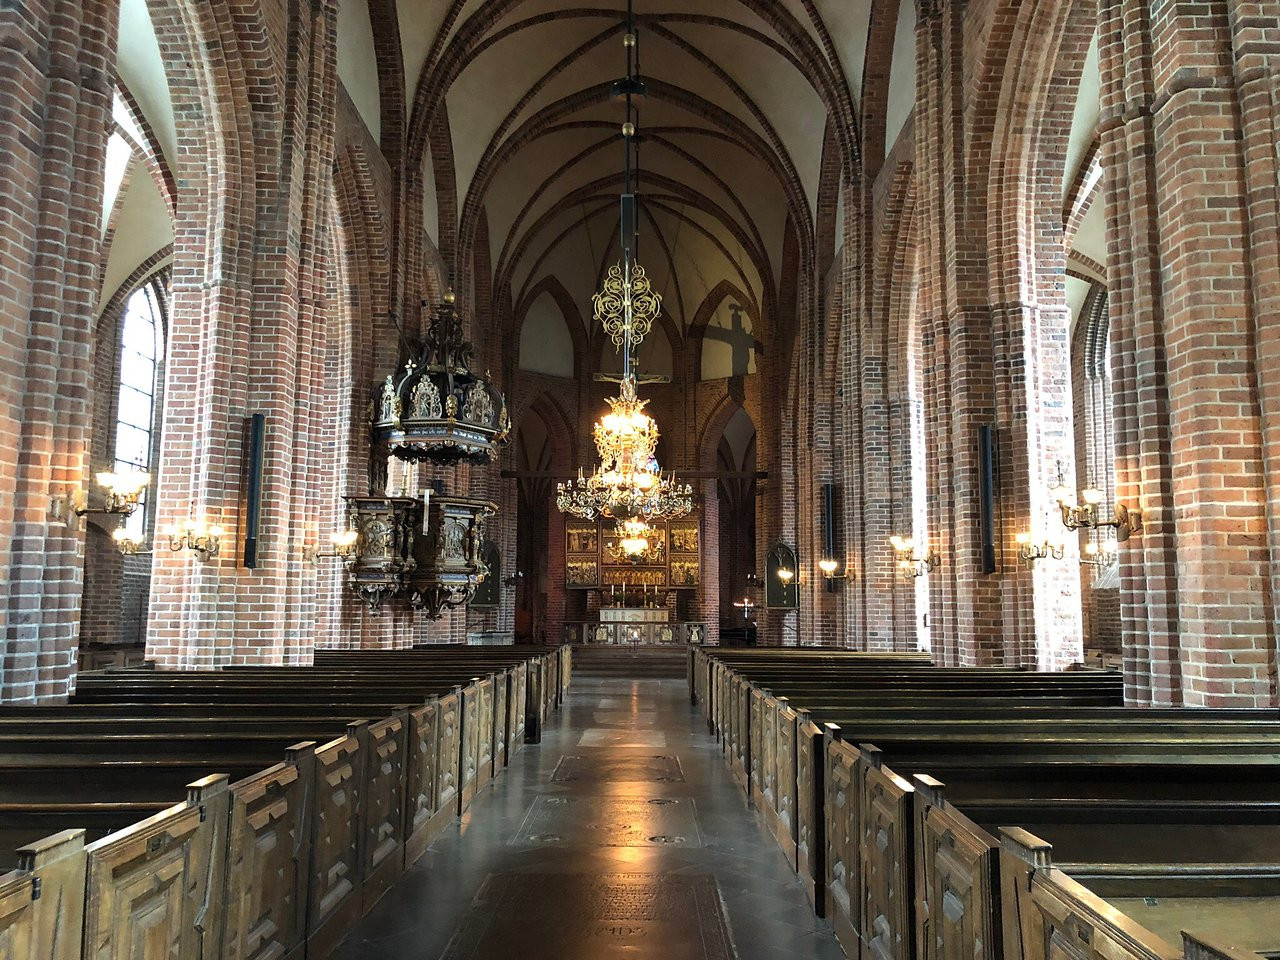 St. Mary's Church in Helsingborg